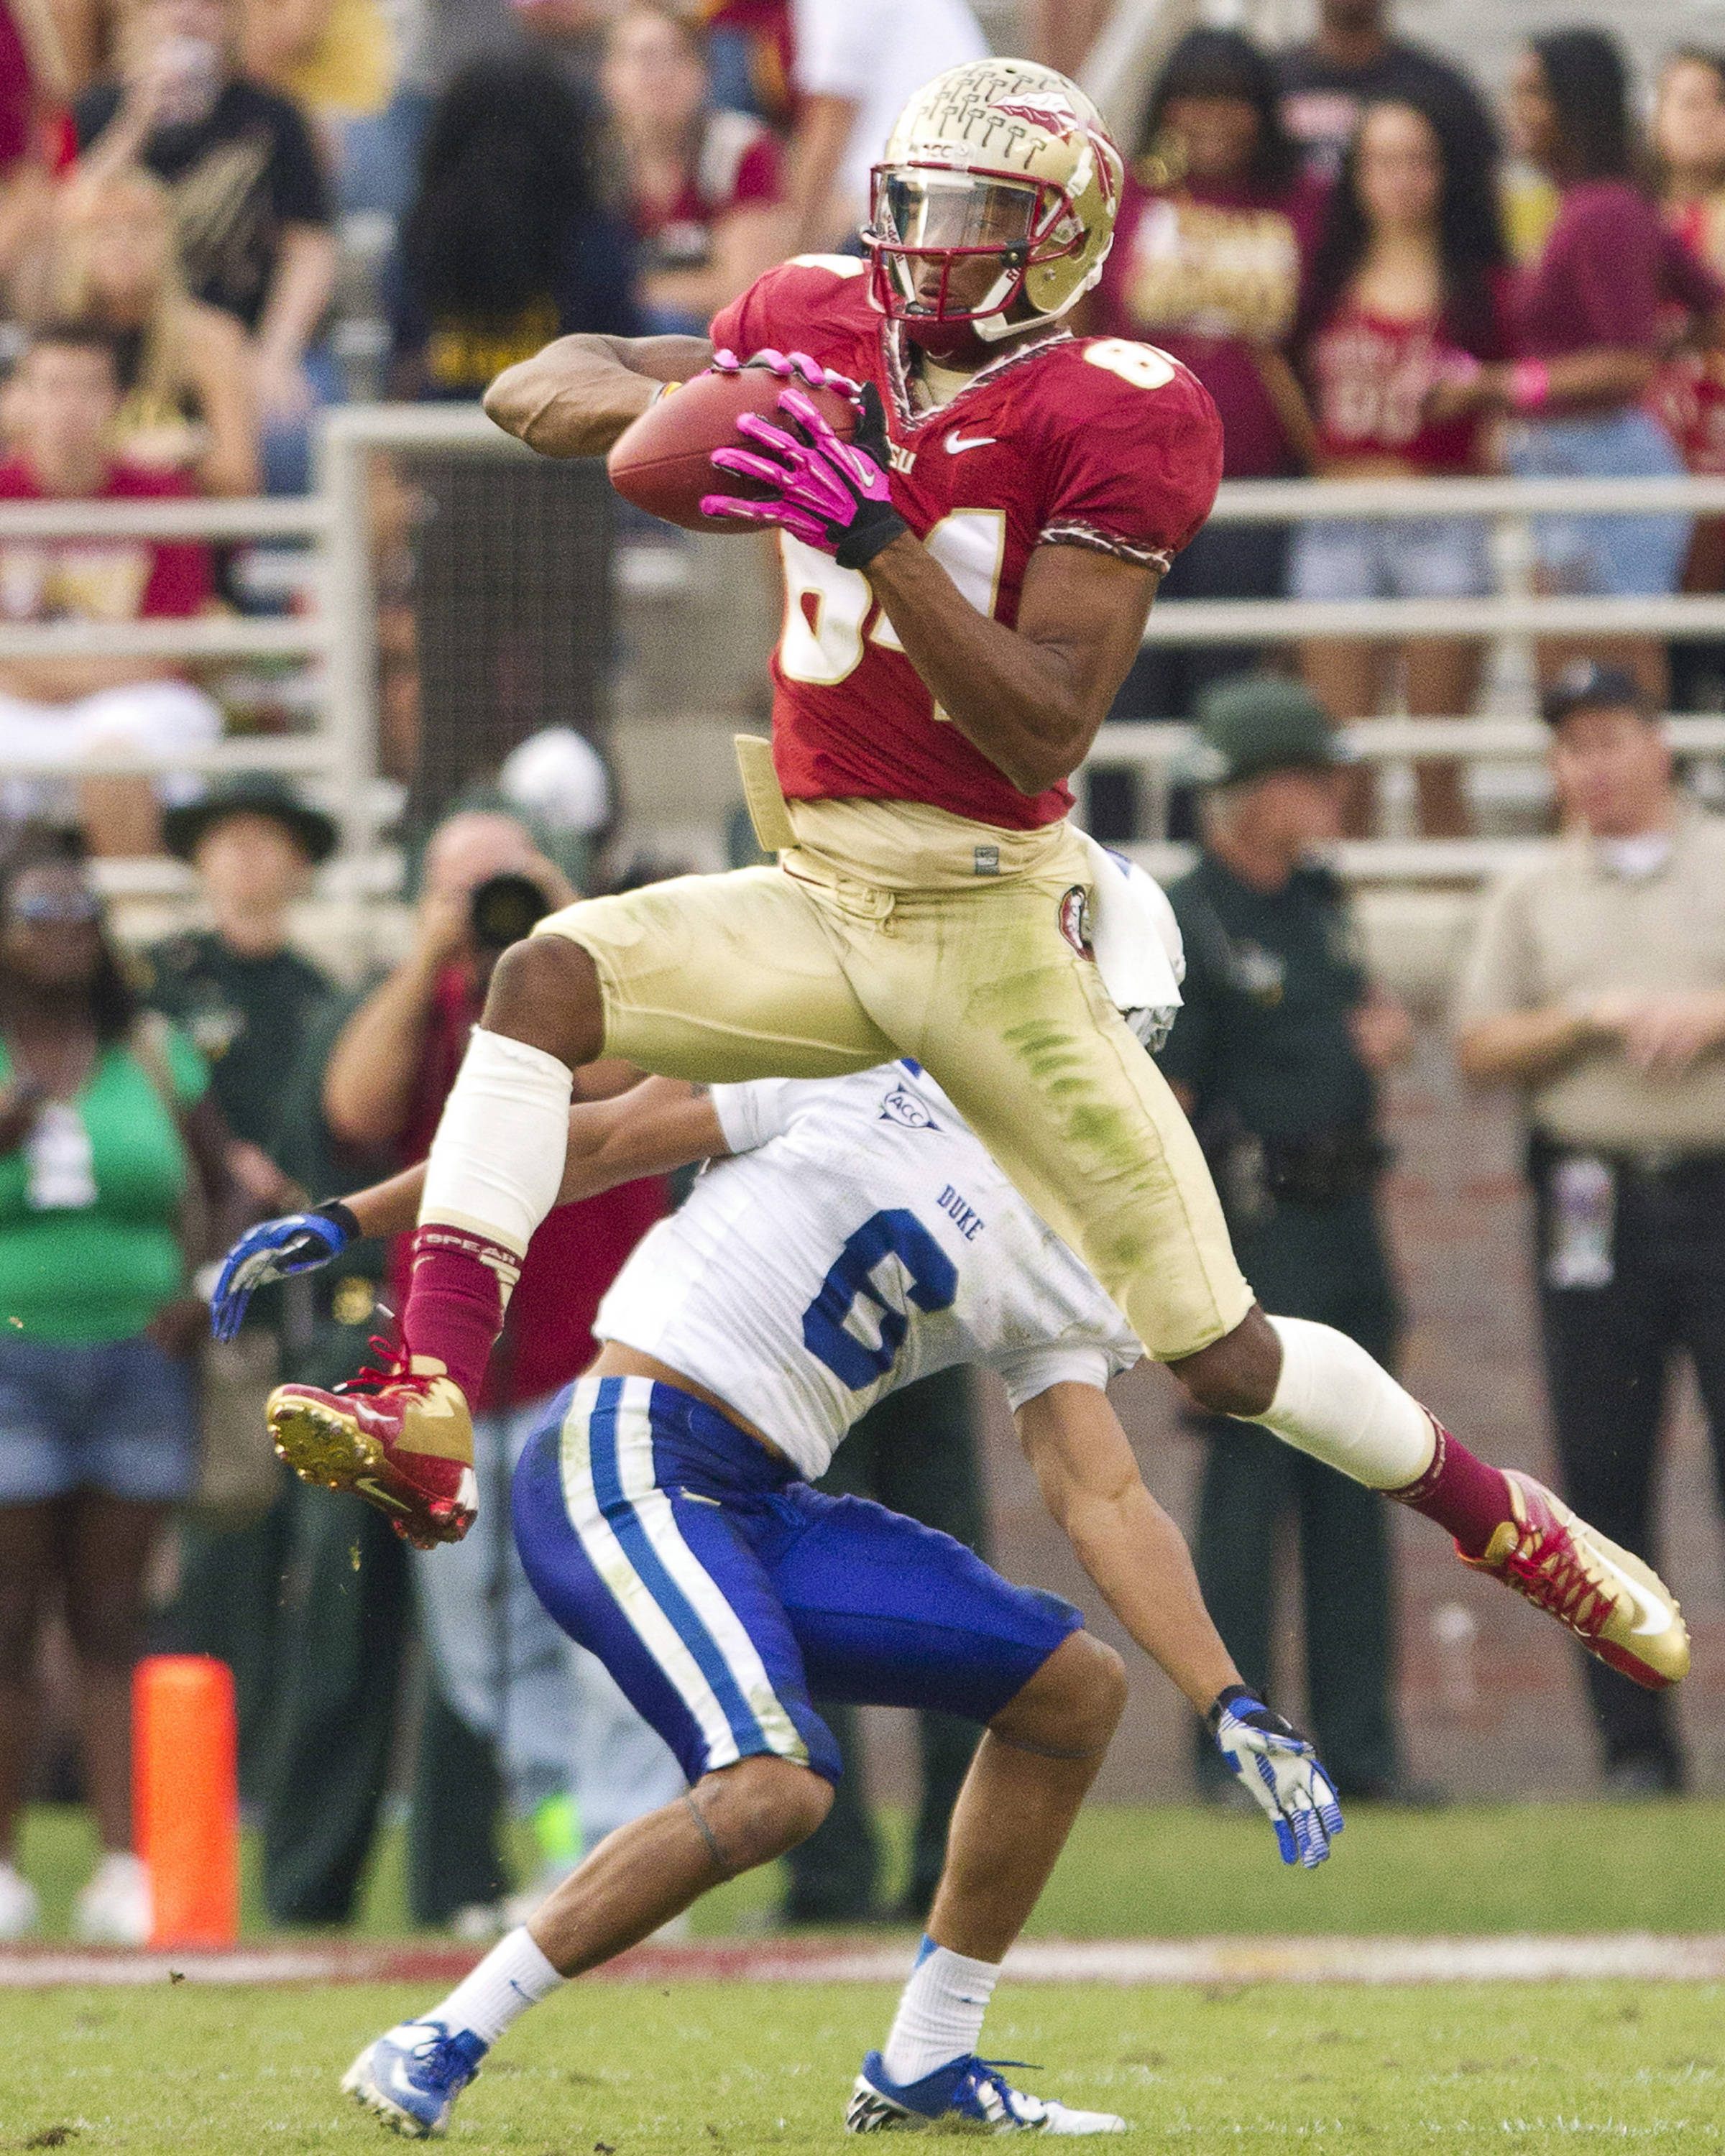 Rodney Smith (84) makes a reception during FSU's 48-7 victory over Duke on October 27, 2012 in Tallahassee, Fla.